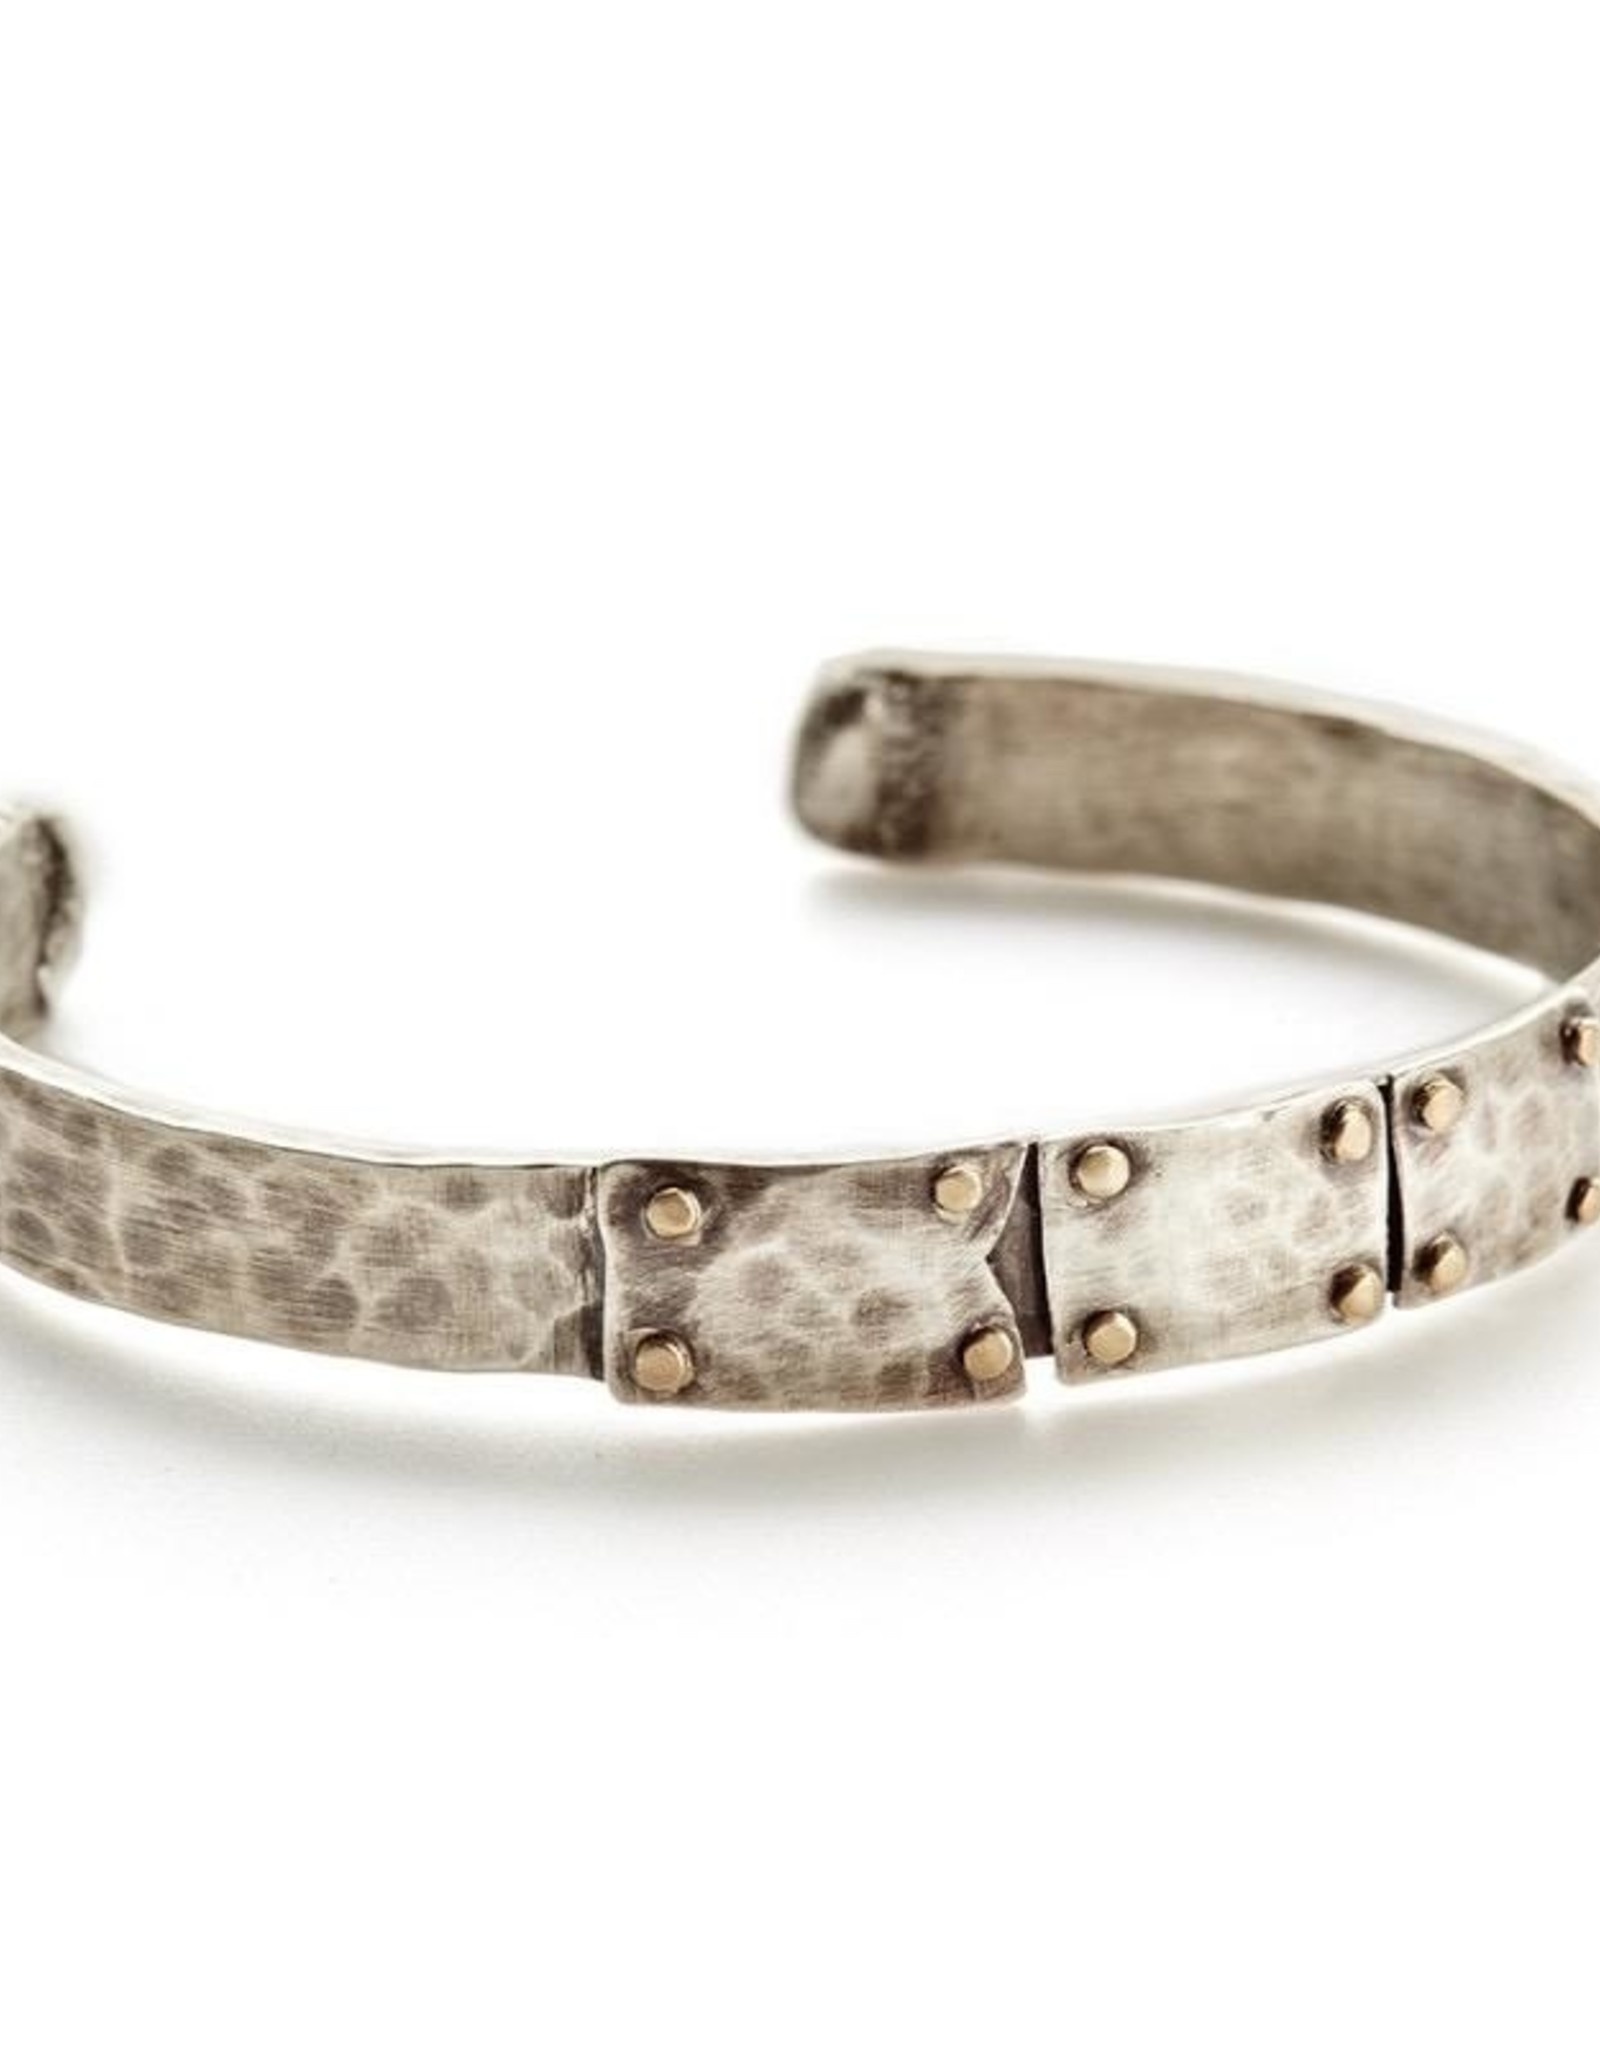 Handmade Rugged Sterling Silver Oxidized Gold Rivet Cuff Bracelet